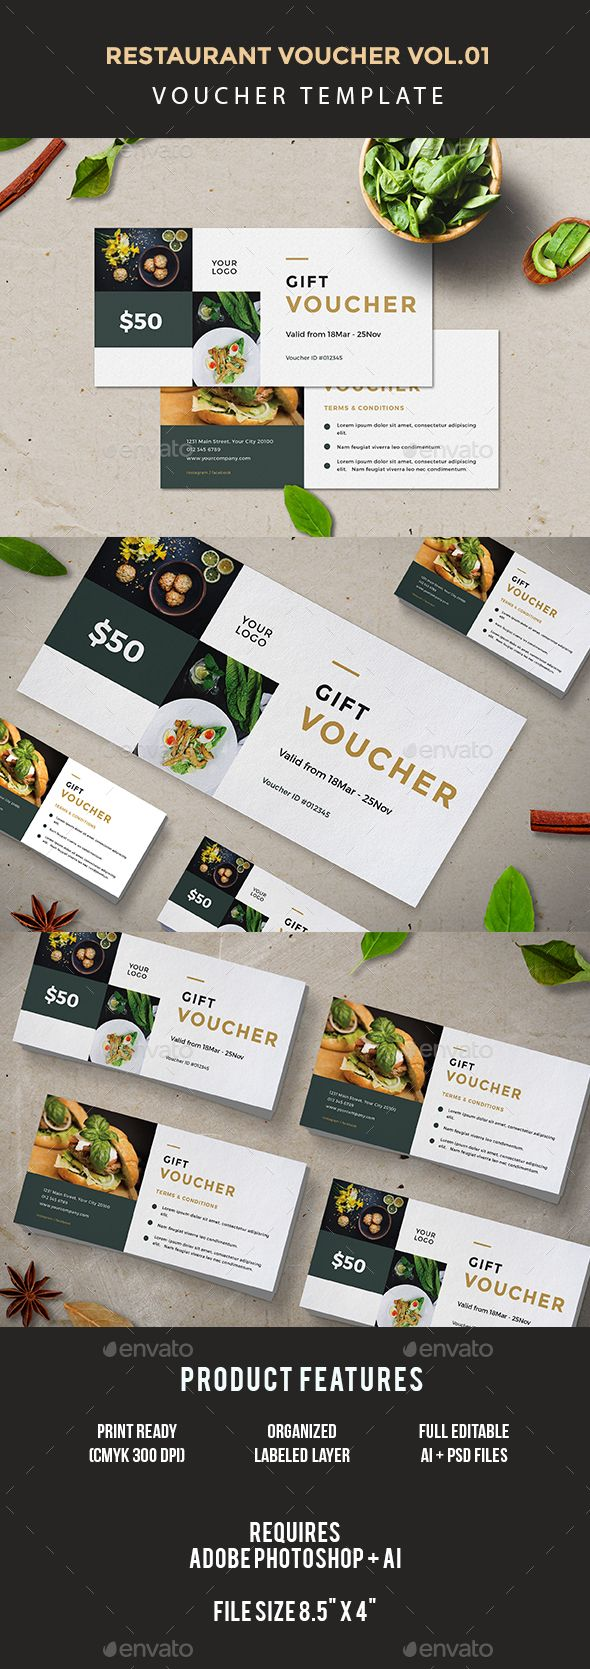 Restaurant Voucher Design Template - Loyalty Cards Cards & Invites Templaye PSD, AI Illustrator. Download here: https://graphicriver.net/item/restaurant-voucher/17452483?ref=yinkira